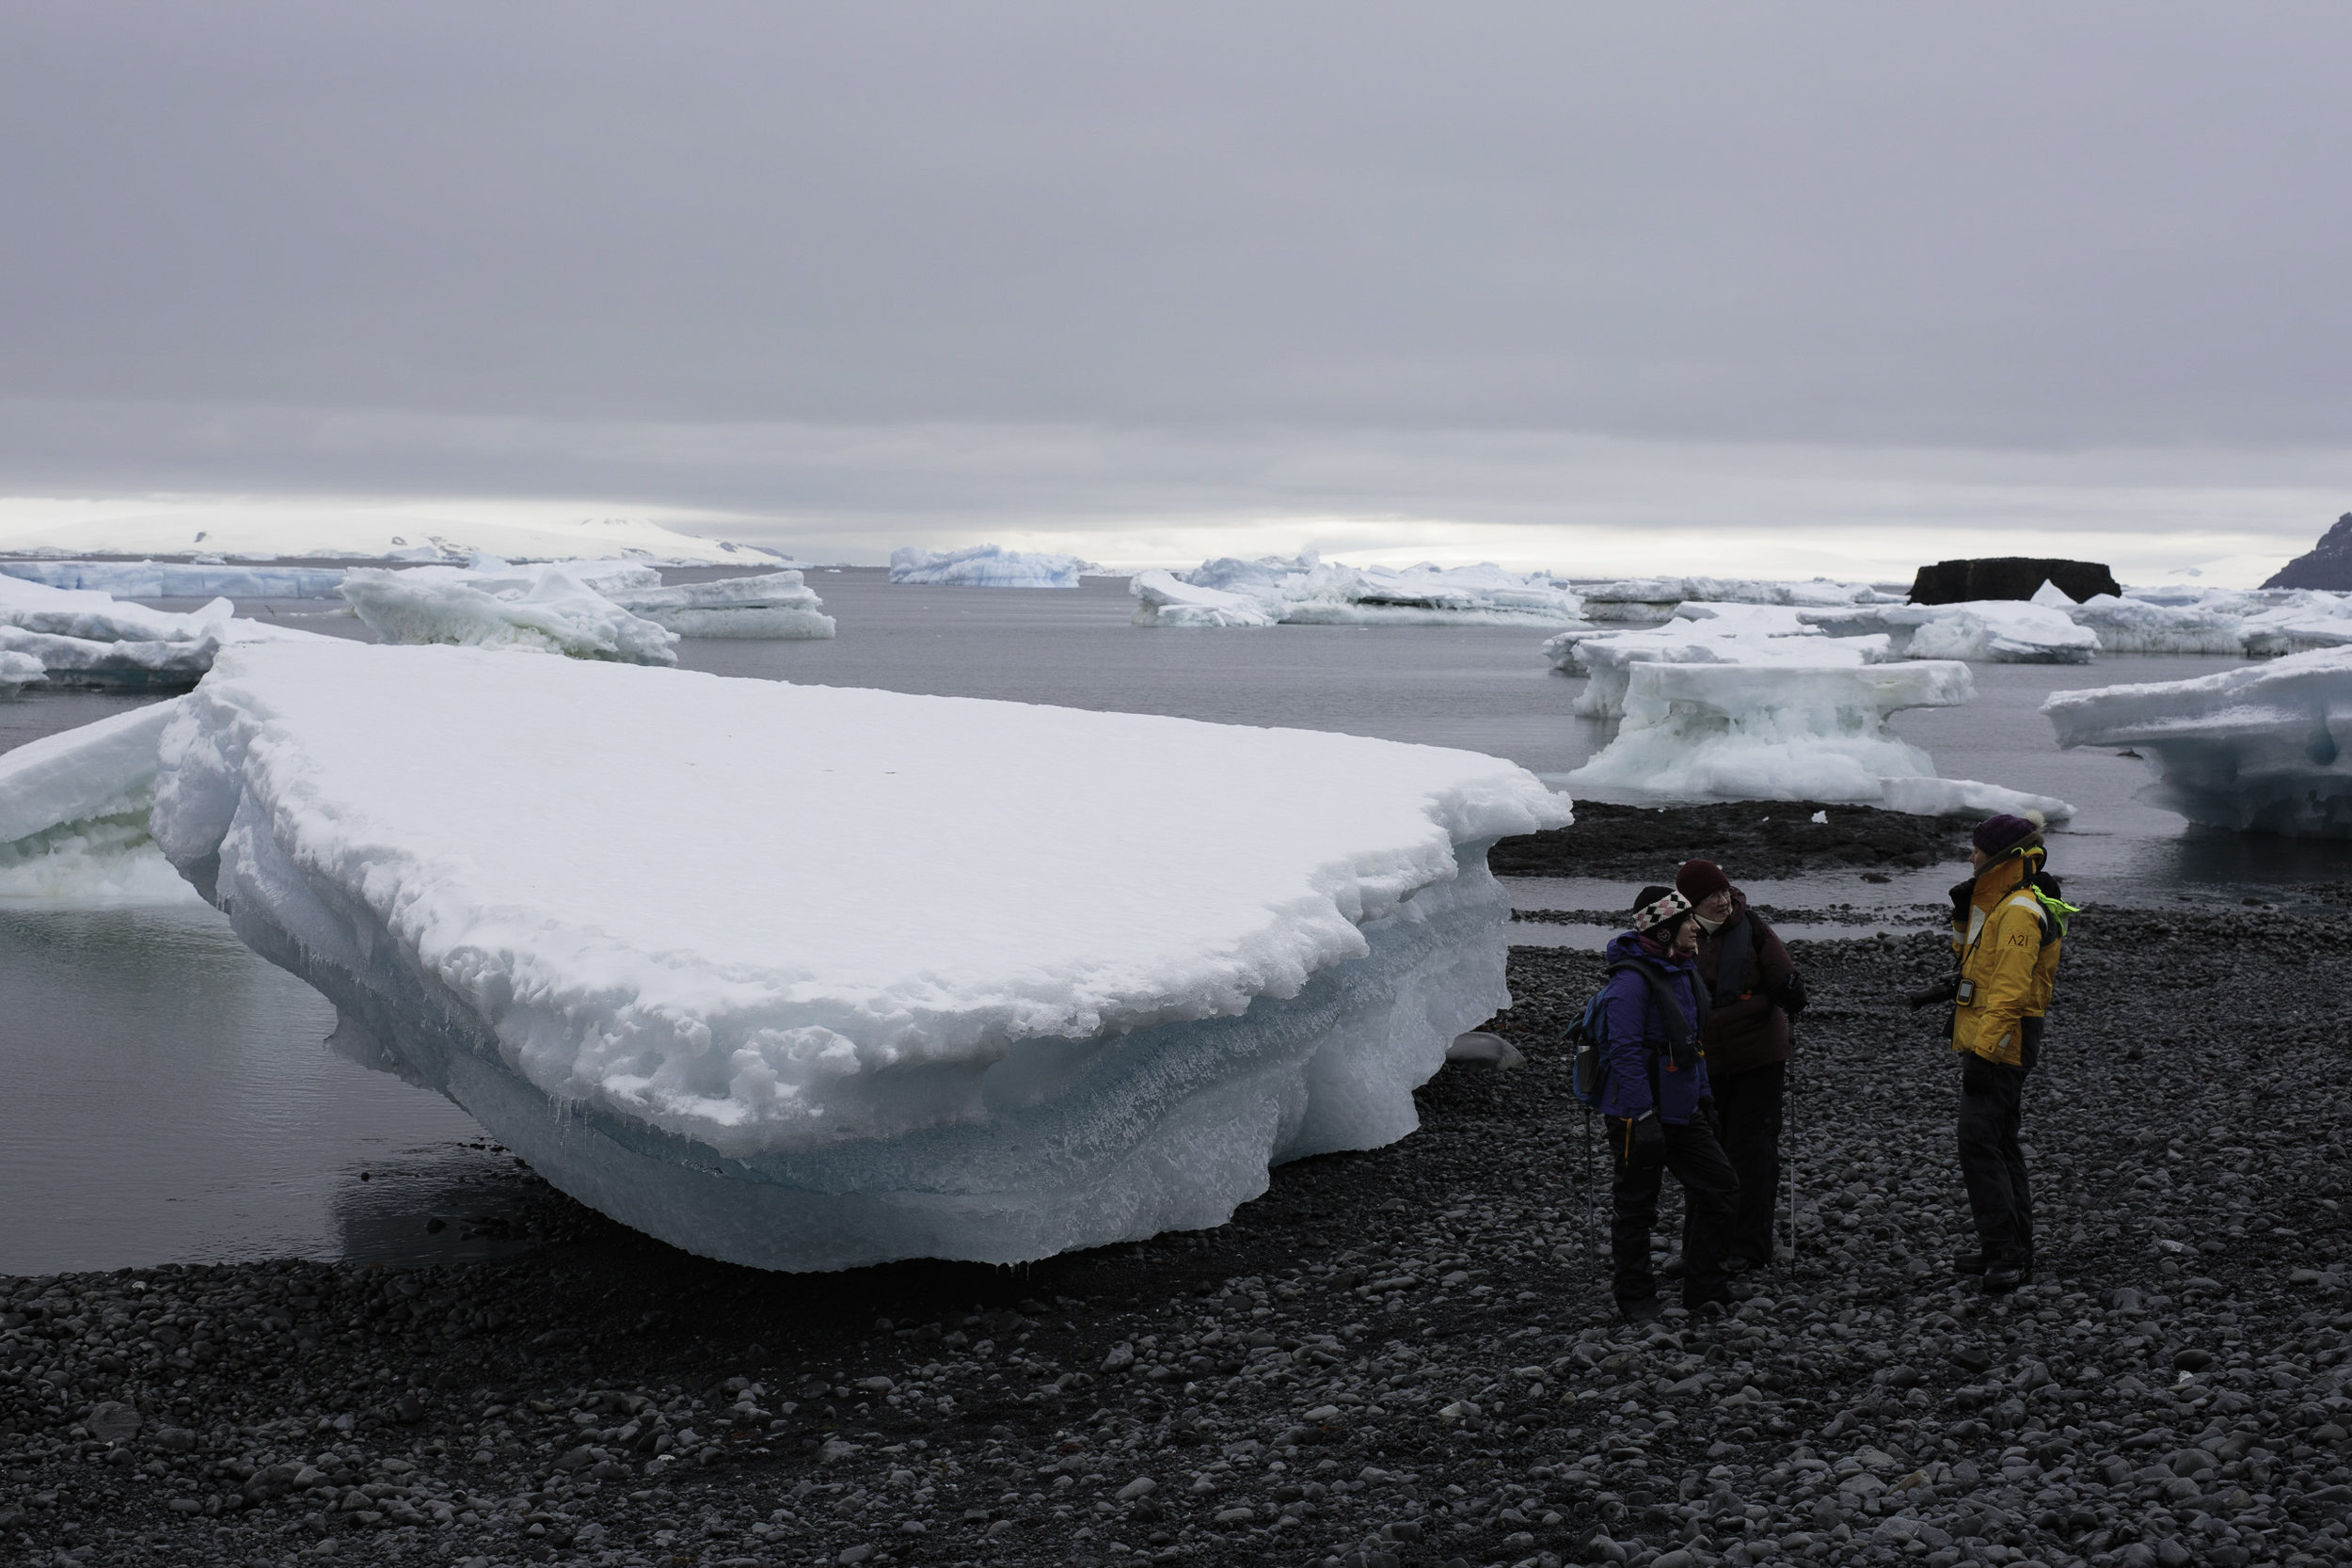 For scale: this small piece of ice would only show the top few inches when floating, the rest remains below the surface.